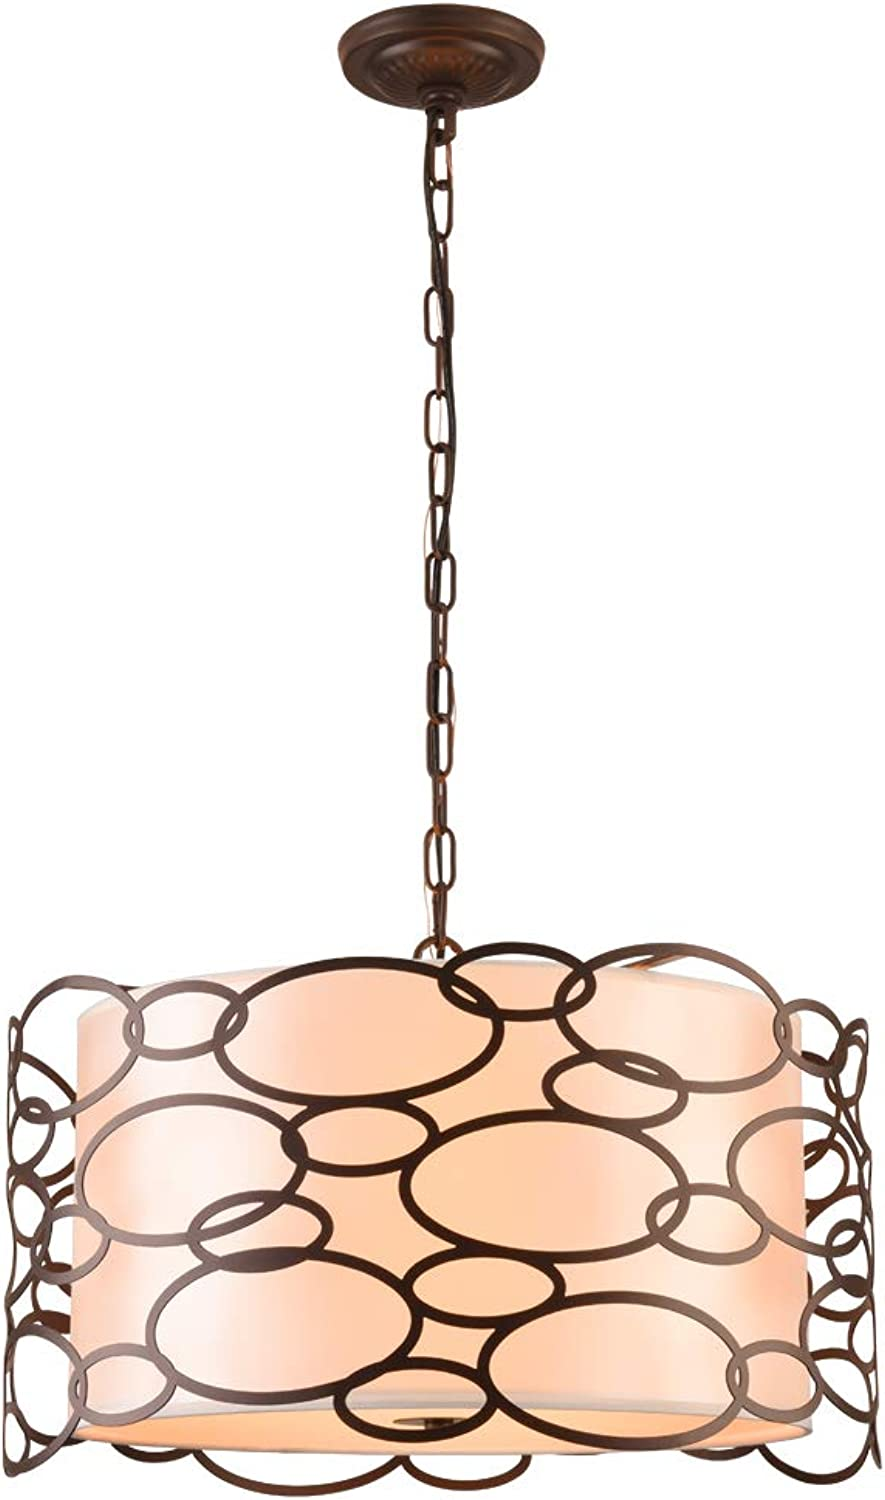 Mirrea Modern Pendant Light 3 Lights in Fabric Drum with Frosted Acrylic Cover and Bubble Shape Oil Rubbed Bronze Metal Drum Shade